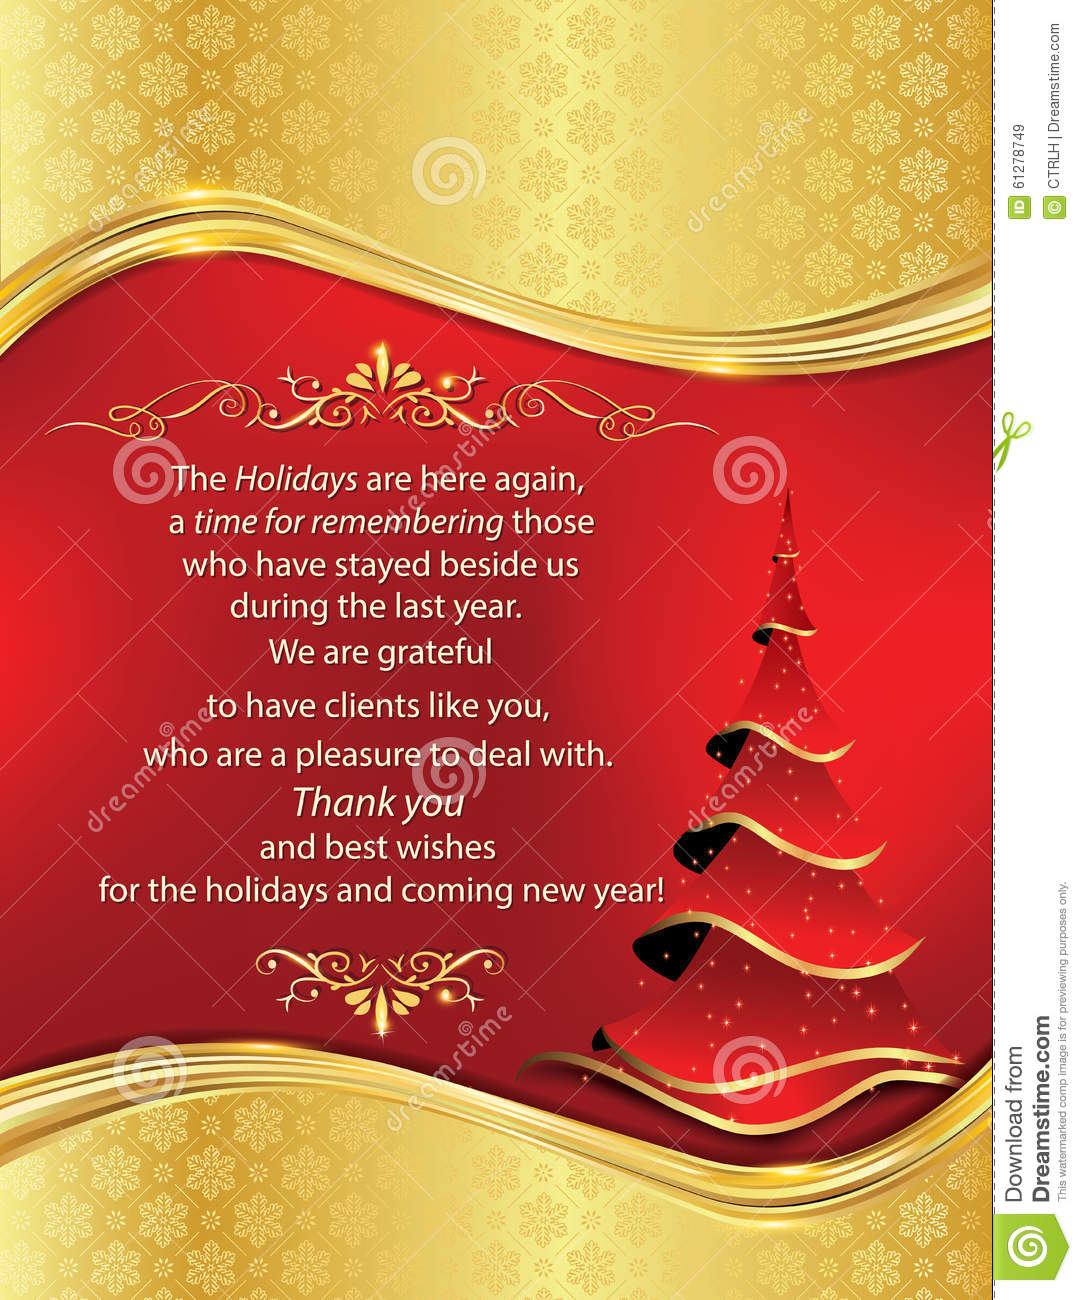 business greeting card for christmas and new year especially created for companies that want to thank their clients contains christmas tree and decorative - Christmas Cards For Clients